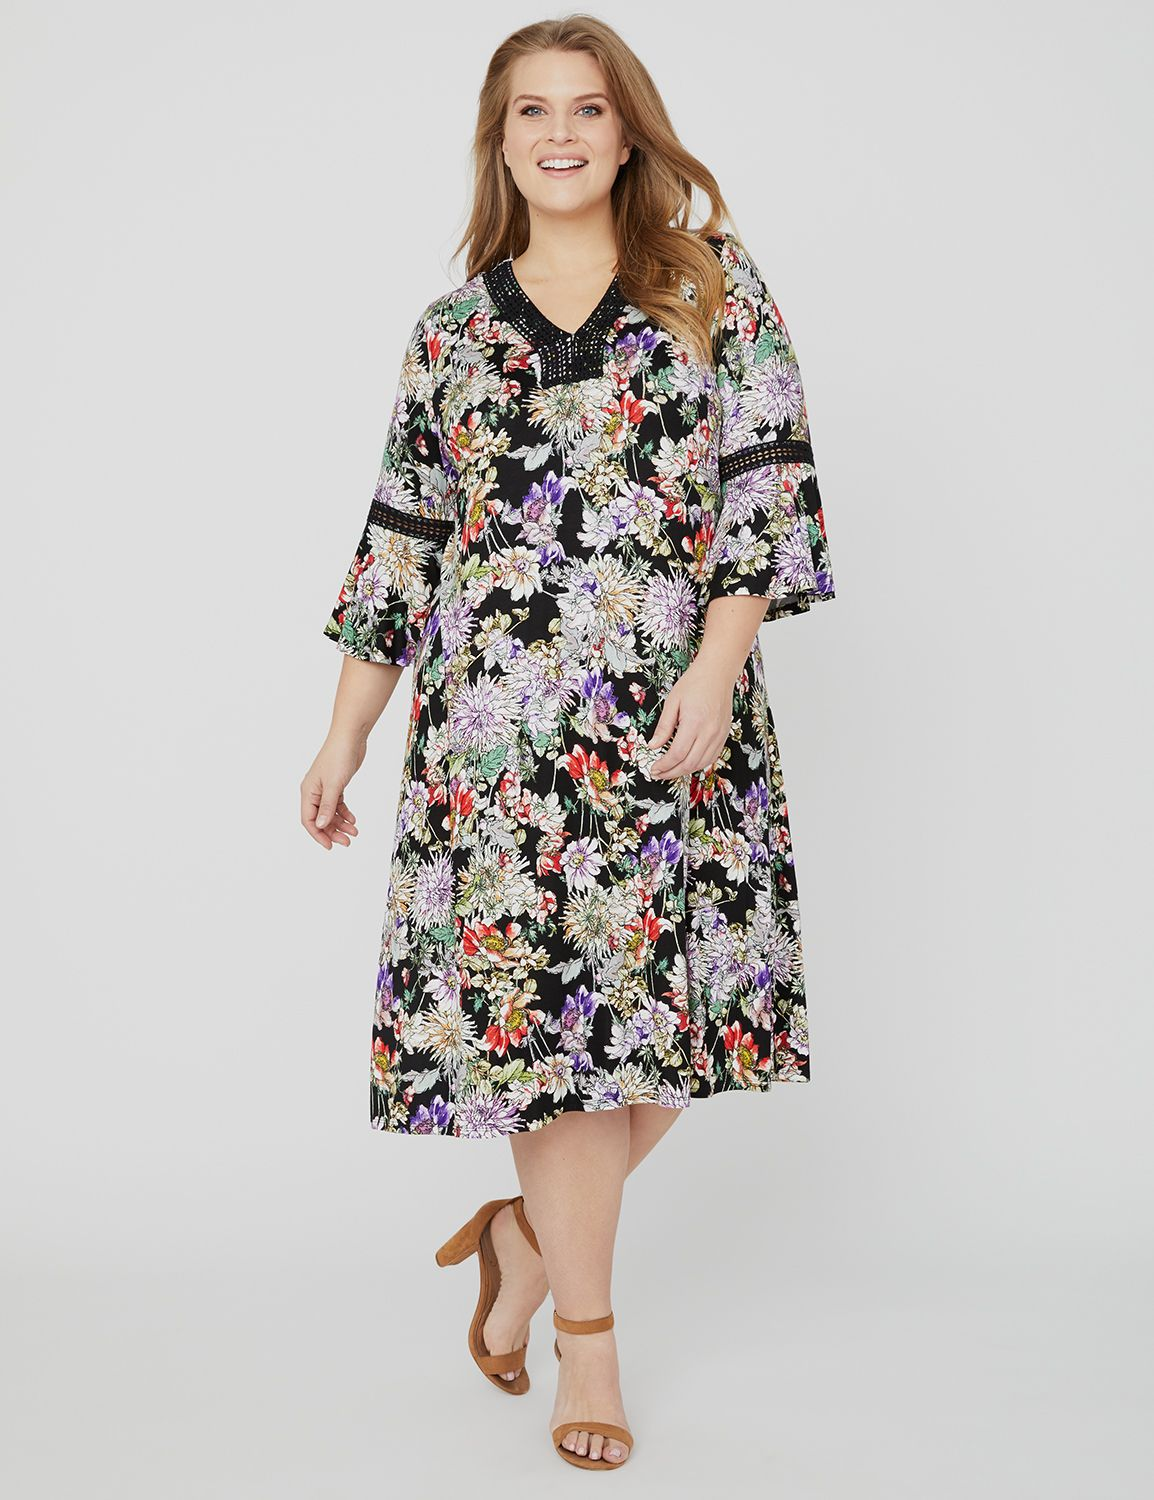 Floral Meadow Dress 1092650 Spense Floral Print Dress w MP-300102323